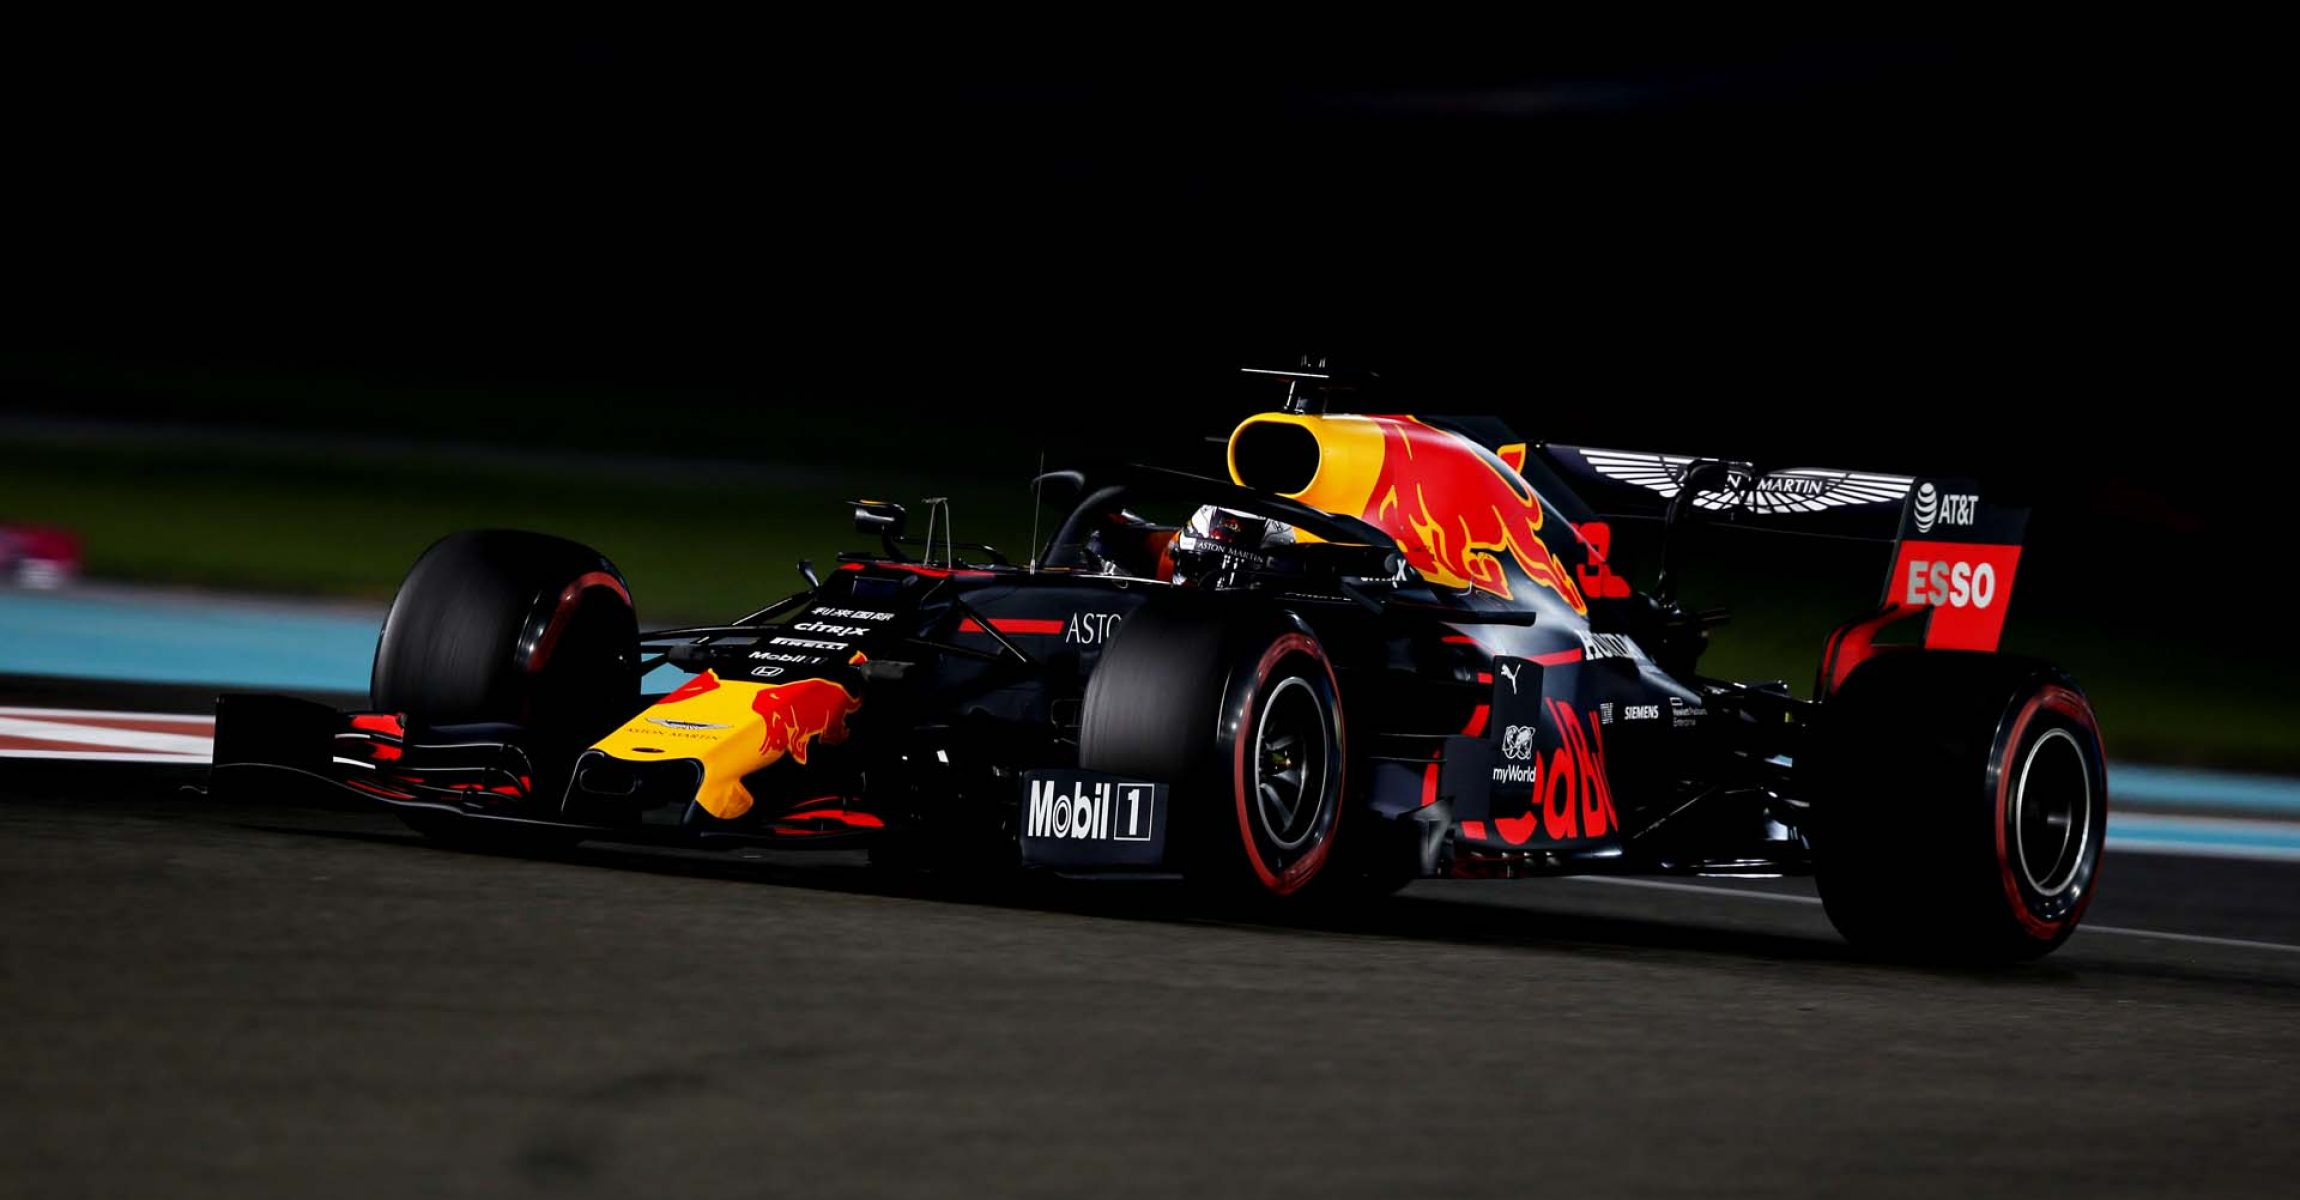 ABU DHABI, UNITED ARAB EMIRATES - NOVEMBER 29: Max Verstappen of the Netherlands driving the (33) Aston Martin Red Bull Racing RB15 on track during practice for the F1 Grand Prix of Abu Dhabi at Yas Marina Circuit on November 29, 2019 in Abu Dhabi, United Arab Emirates. (Photo by Charles Coates/Getty Images) // Getty Images / Red Bull Content Pool  // AP-22B74F6KN2111 // Usage for editorial use only //